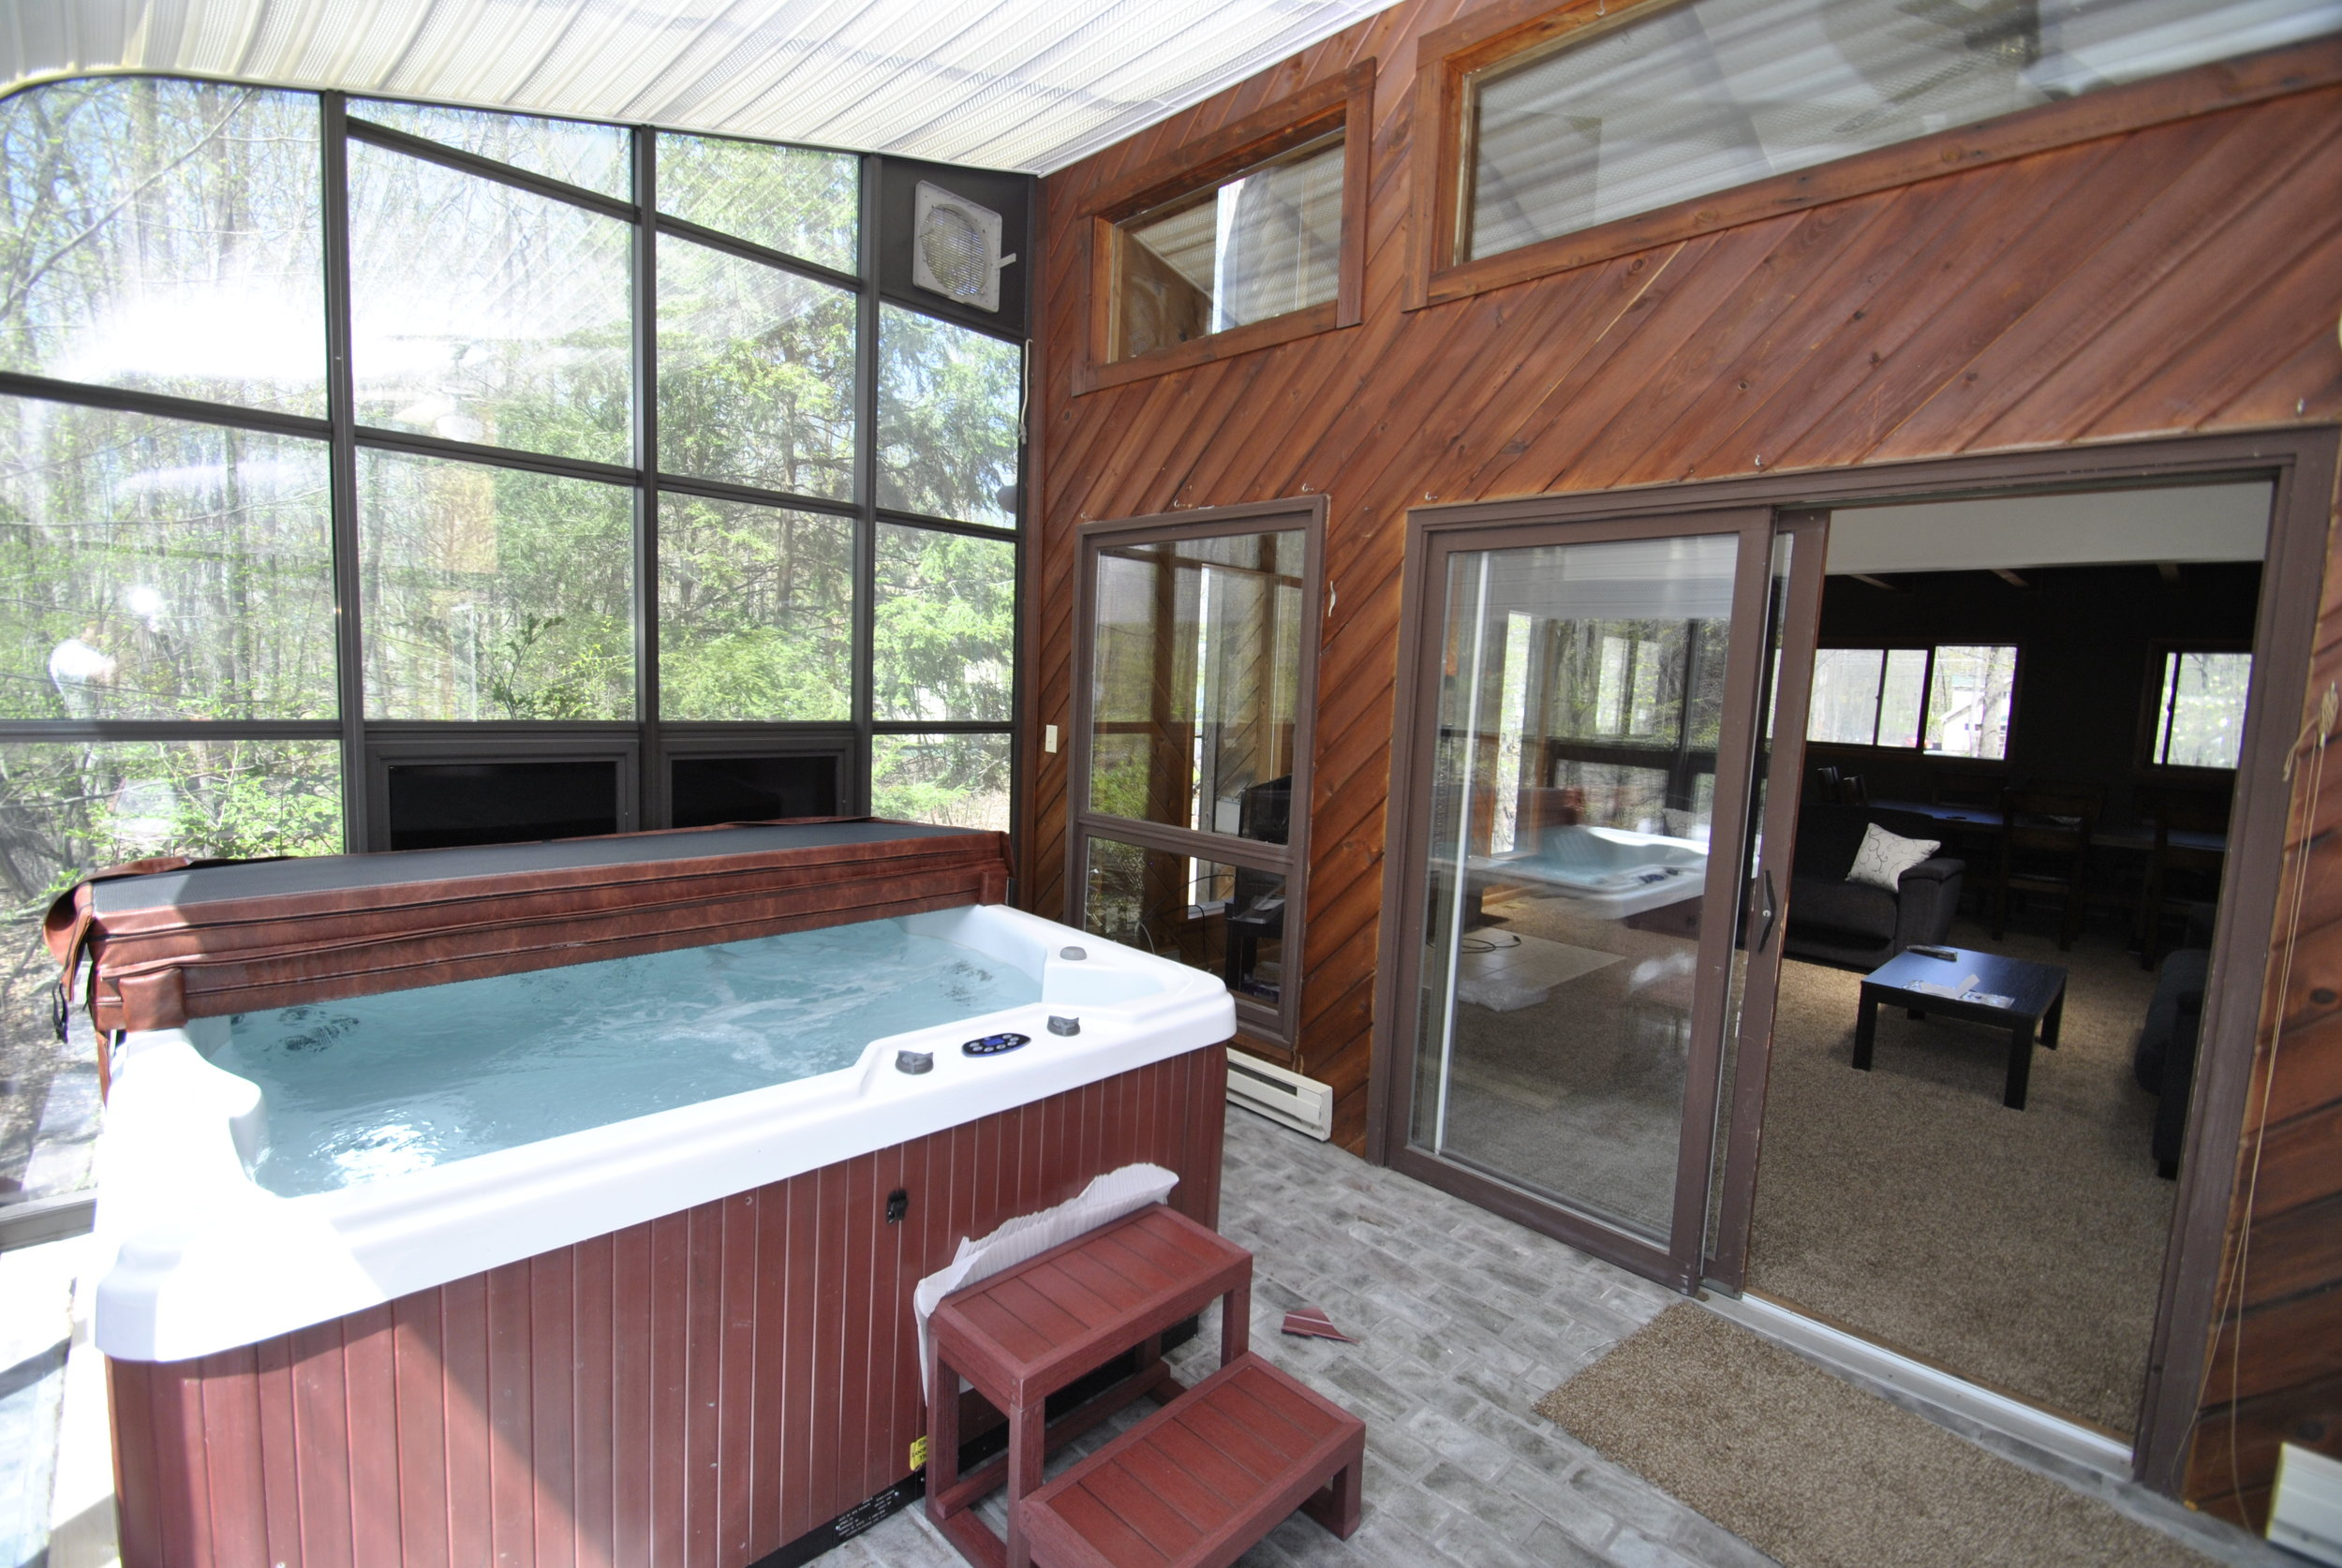 Sleeps 14-16: 5 Bedrooms (5 queen beds), 3 Baths, Small Private Pool in Back Deck (Only Open Early May - Late Oct), Roku w/Sling/Netflix, BBQ Grill, Game Room with Ping Pong Table and an Indoor Hot Tub.